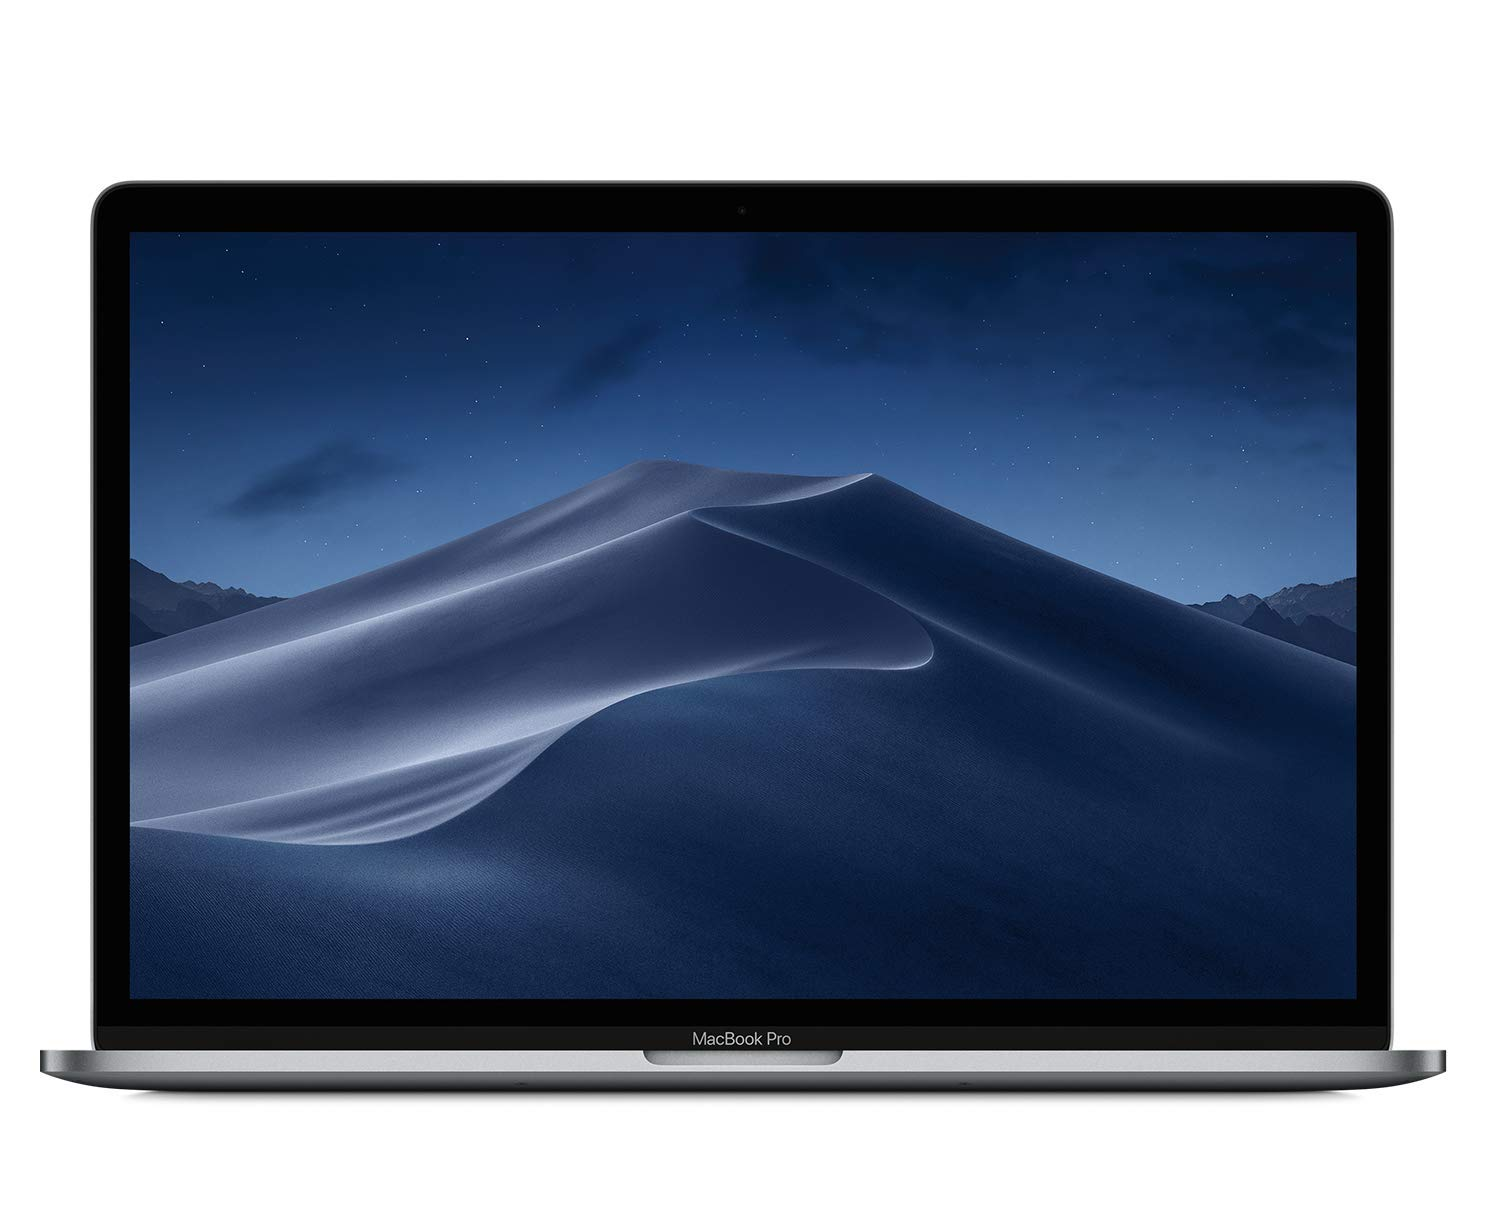 New Apple MacBook Pro (15-inch, Touch Bar, 2.3GHz 8-core Intel Core i9, 16GB RAM, 512GB SSD) - Space Gray by Apple